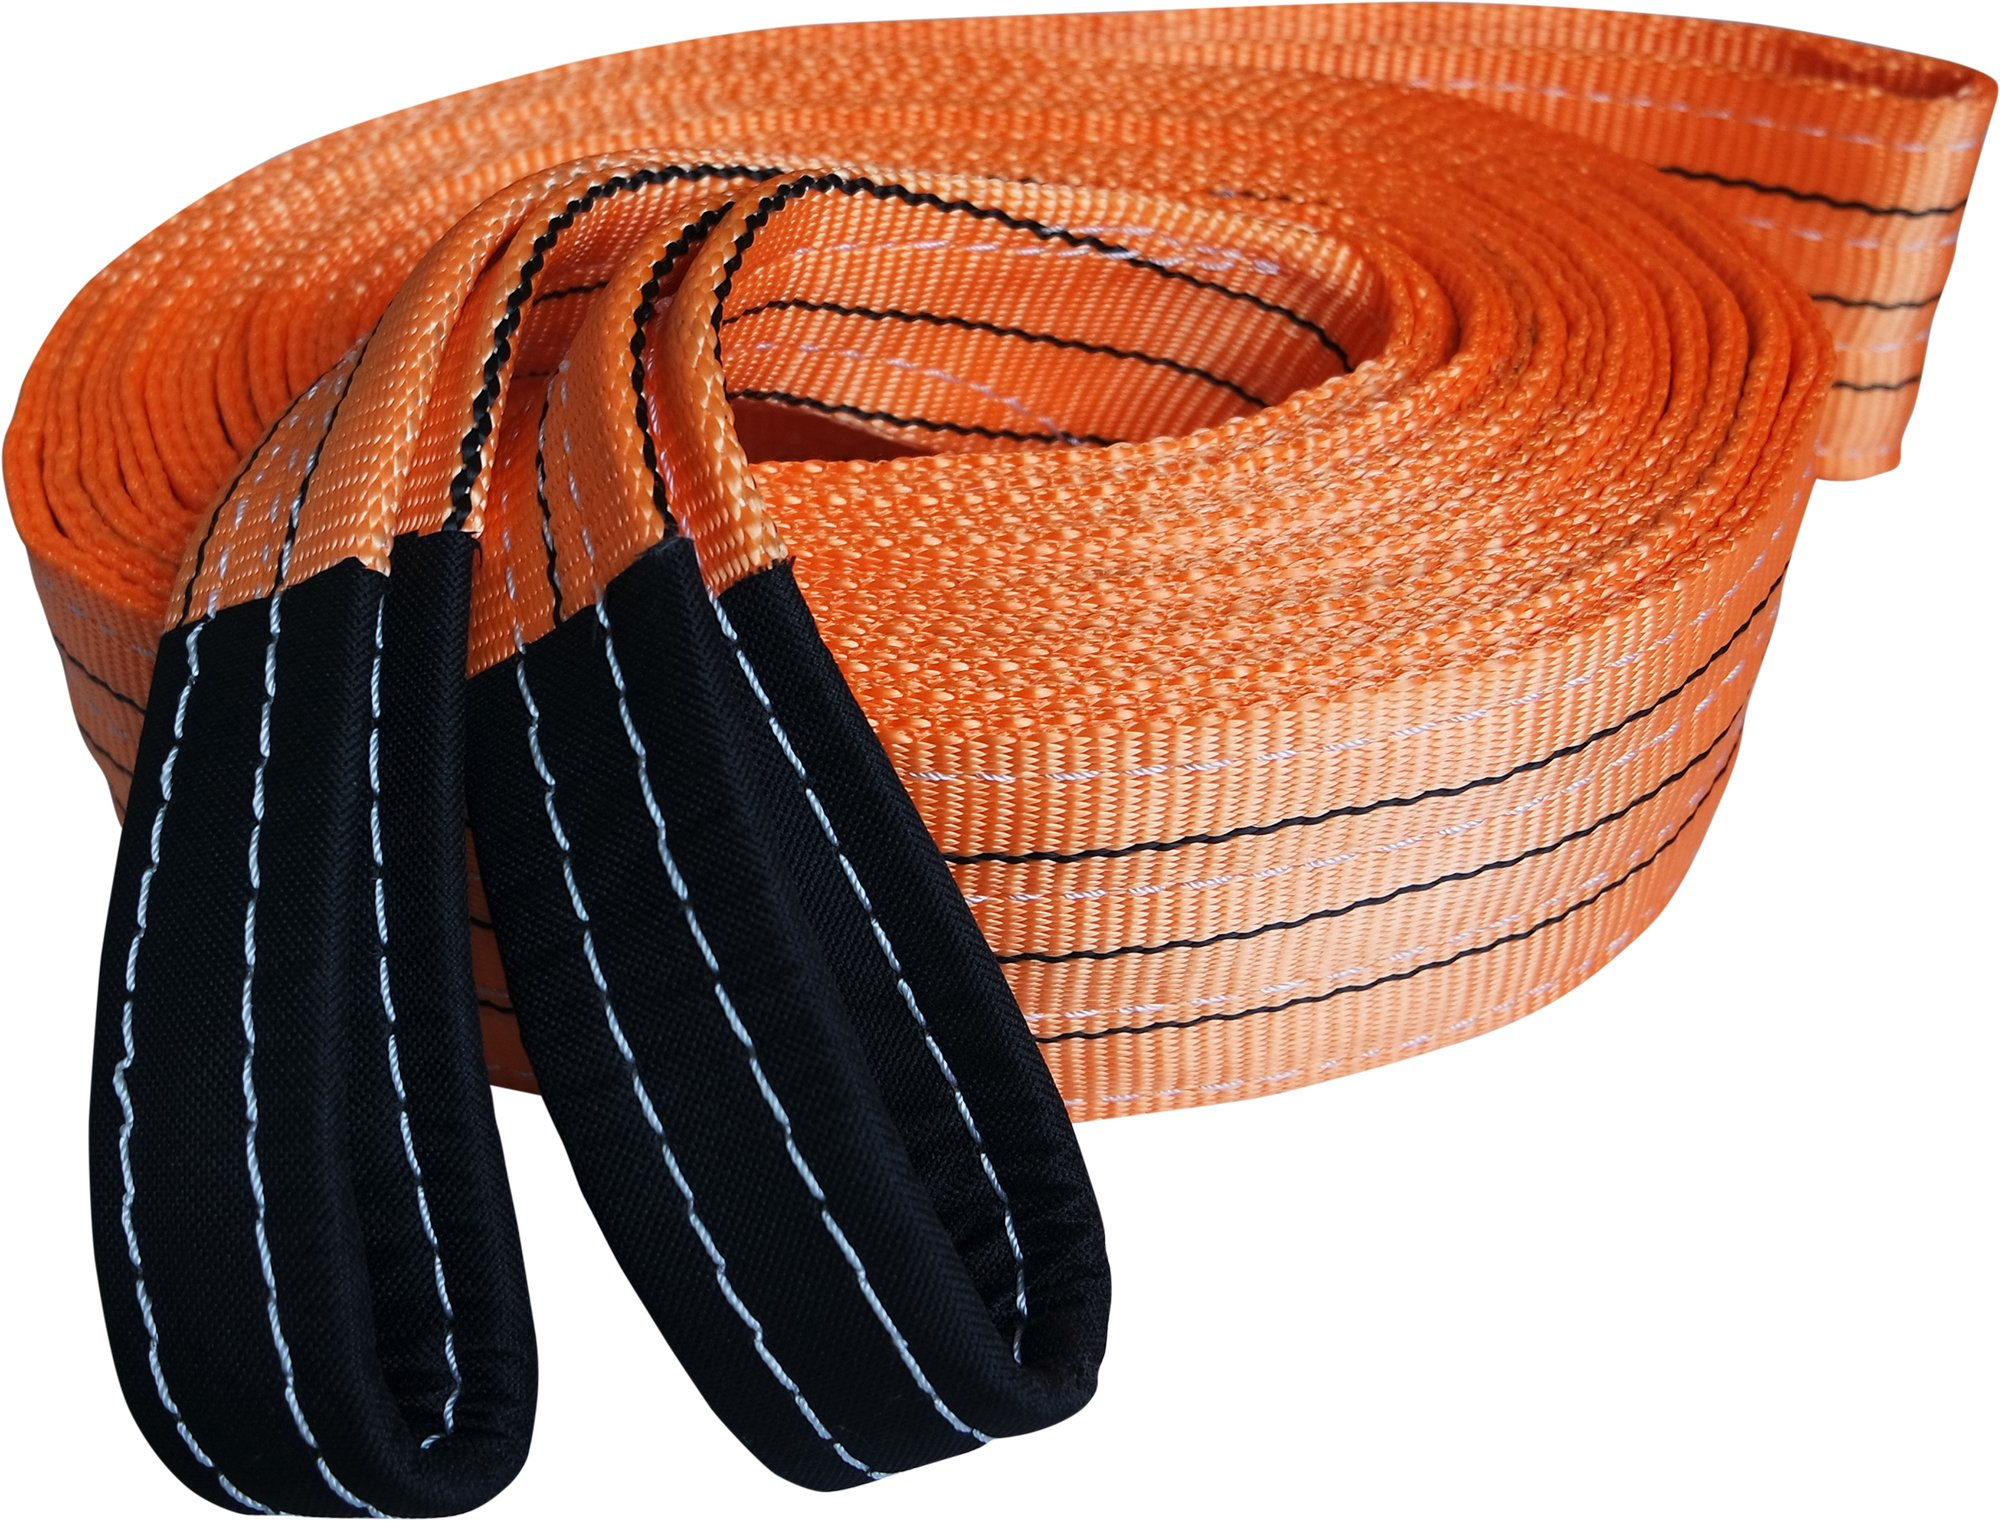 Titan Auto Heavy Duty Recovery Strap | for Off-Road Recovery and Towing (3.5'' x 30' 35K LBS, Orange & Black) by Titan Auto